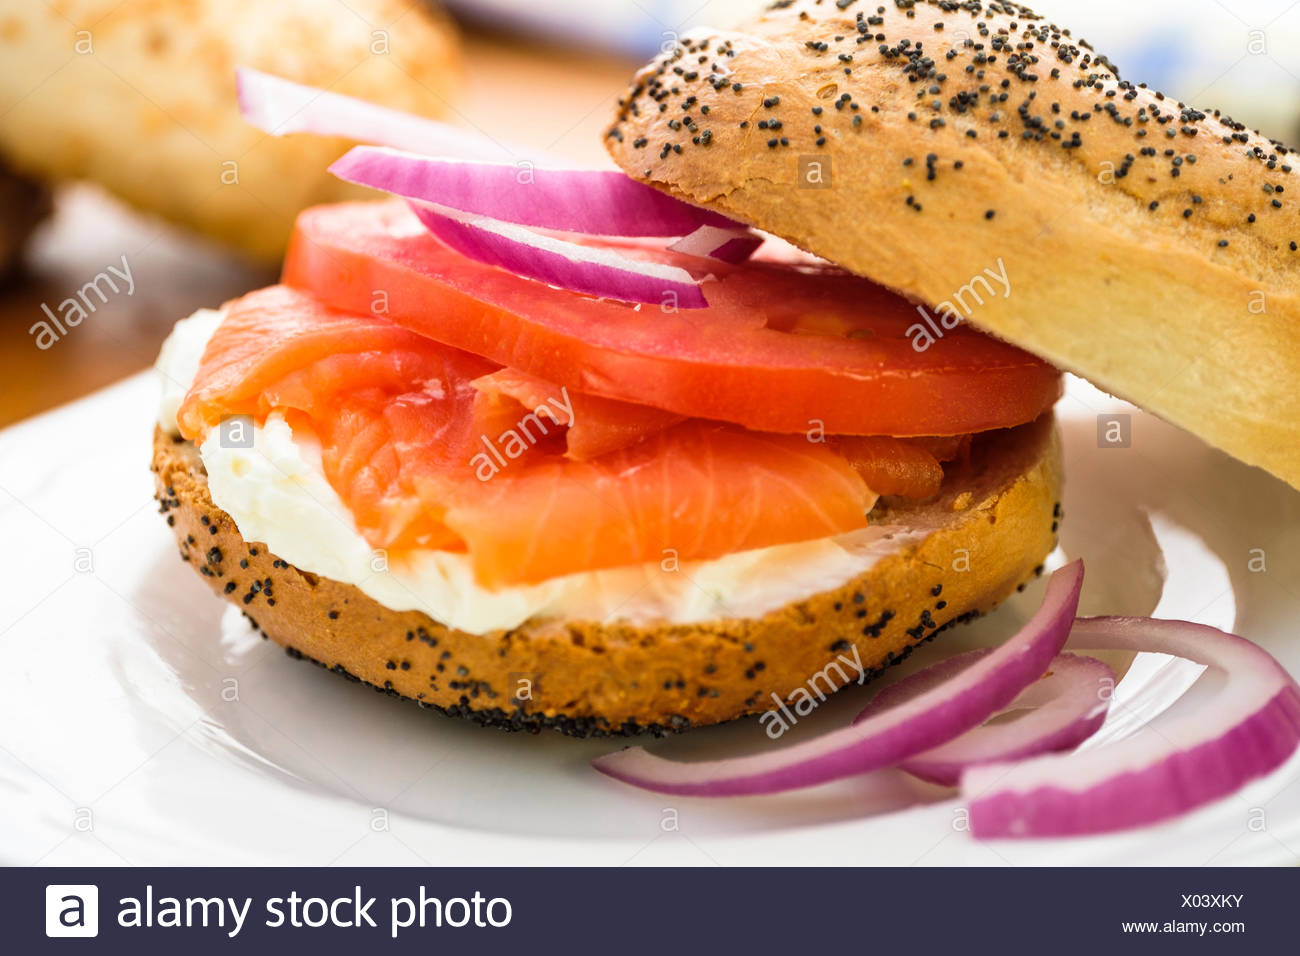 Nova Scotia salmon also called Nova lox - Stock Image